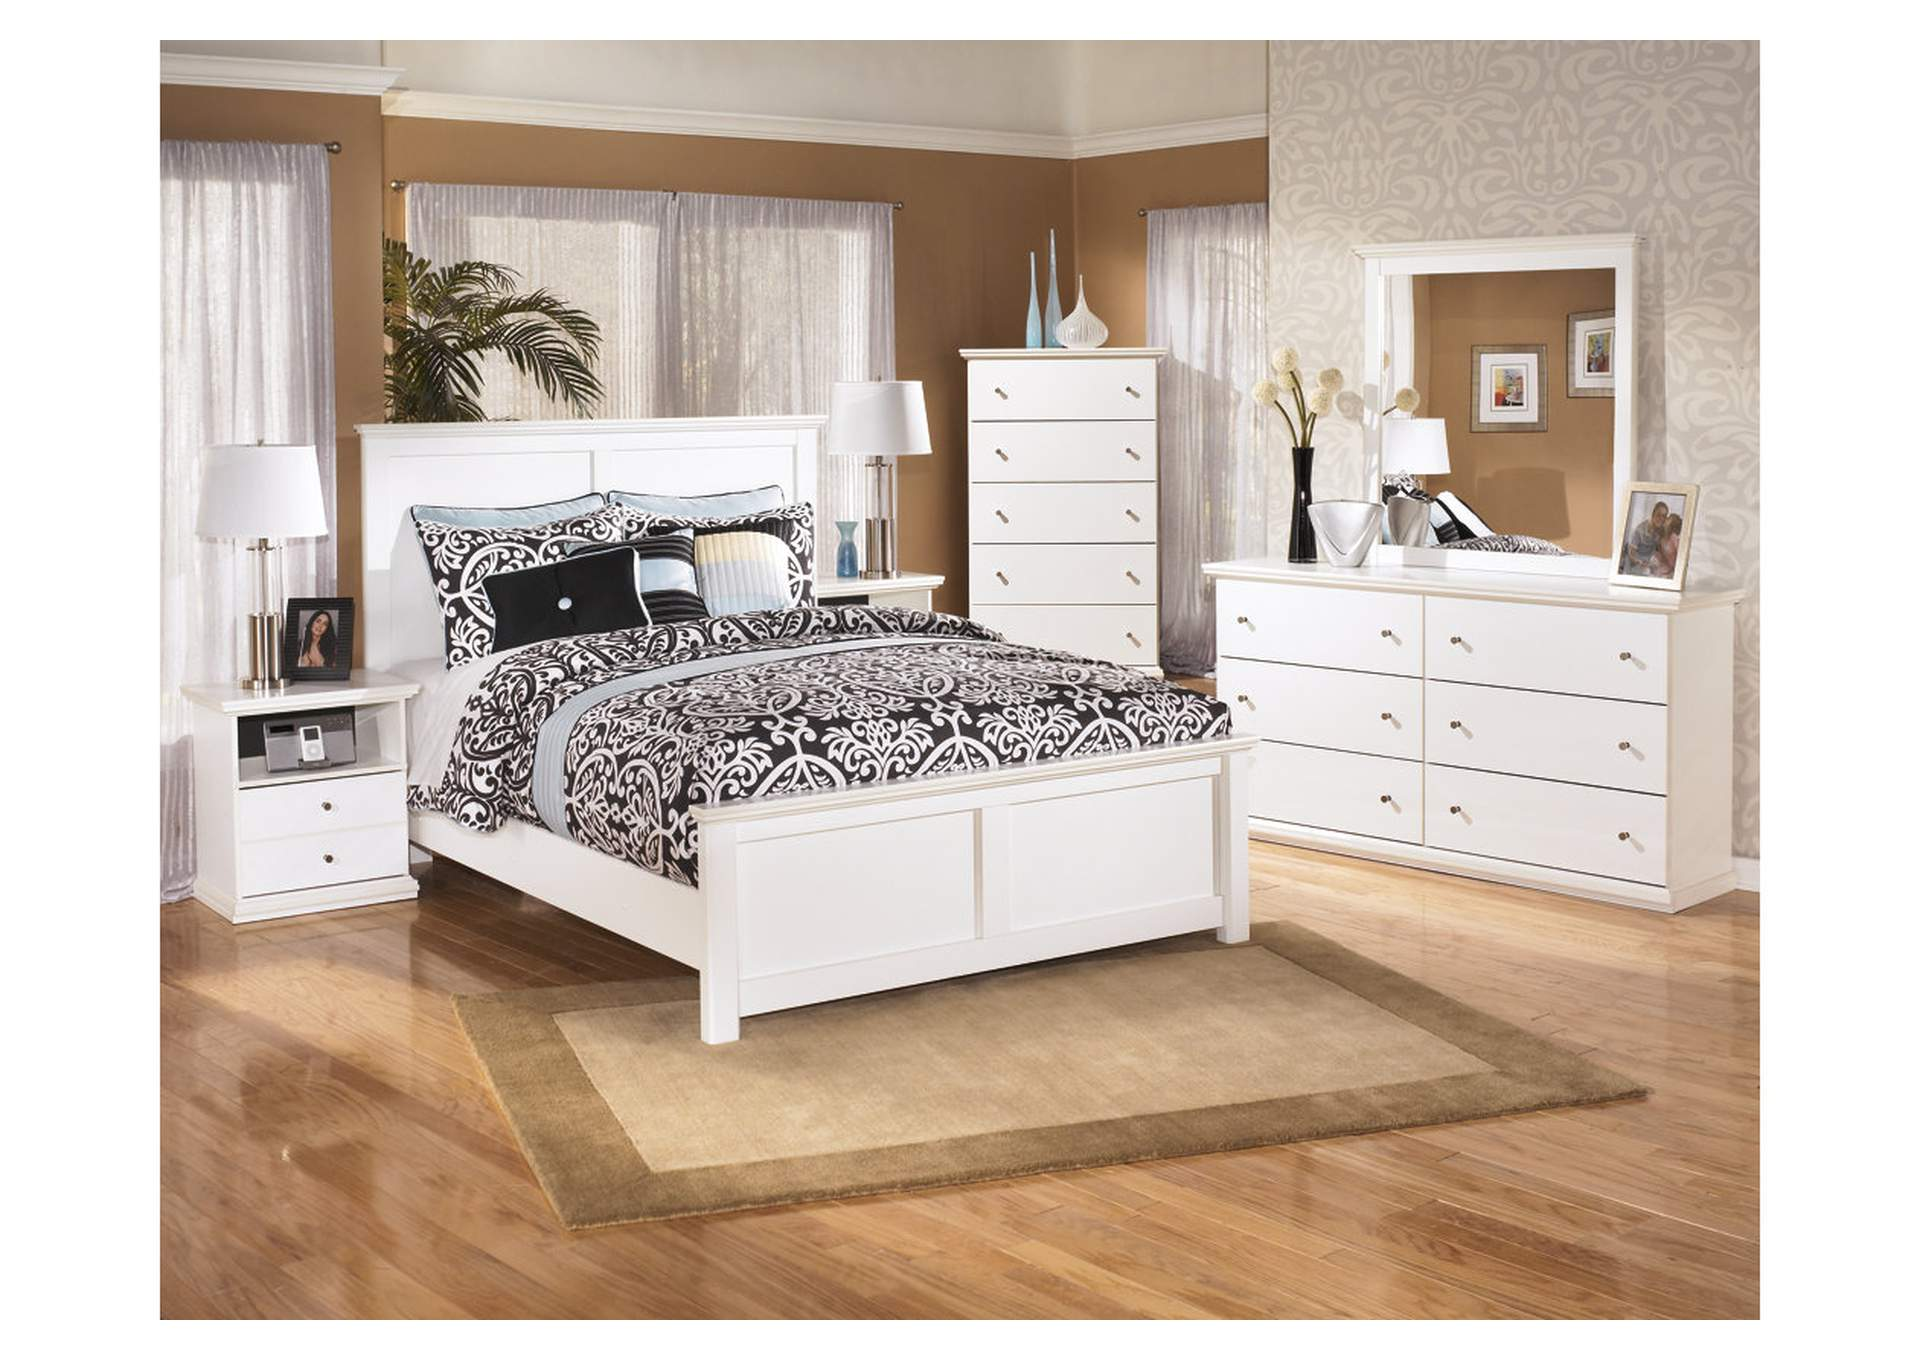 Bostwick Shoals King Panel Bed w/Dresser, Mirror, Drawer Chest & Nightstand,Signature Design By Ashley